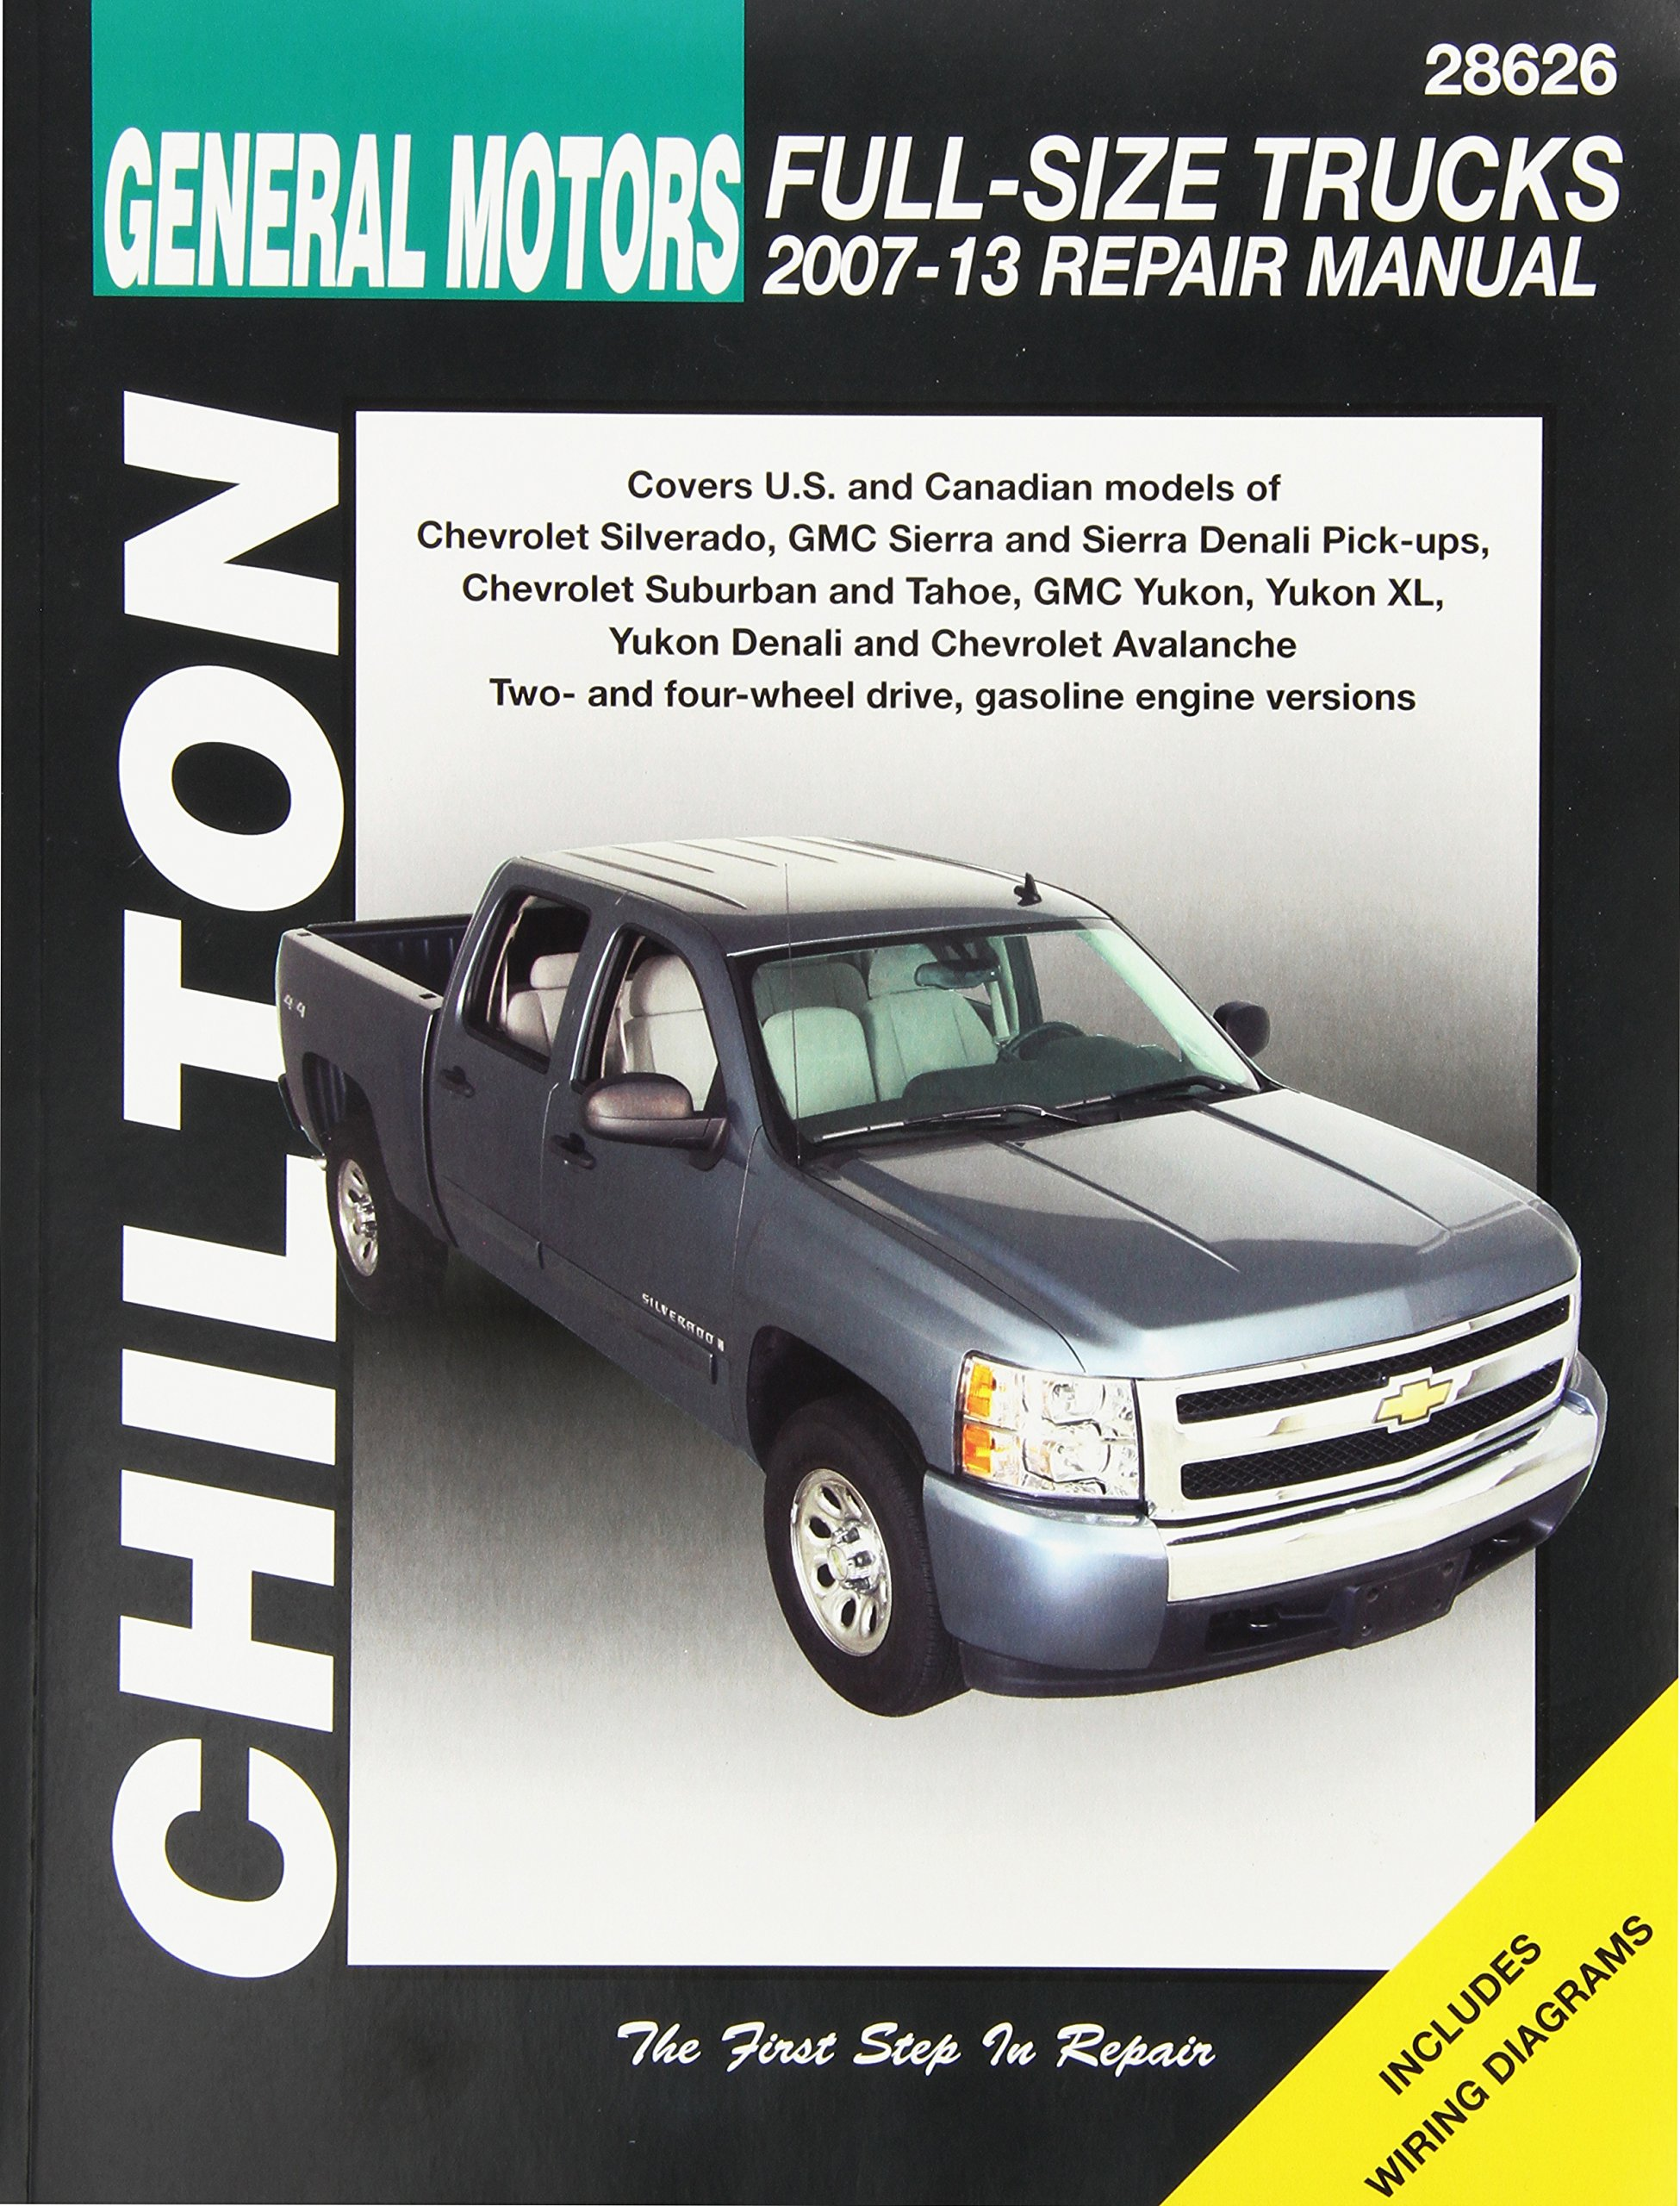 amazon com gm full size trucks chilton repair manual 2007 2012 rh amazon com 2001 silverado repair manual download 2000 silverado repair manual pdf